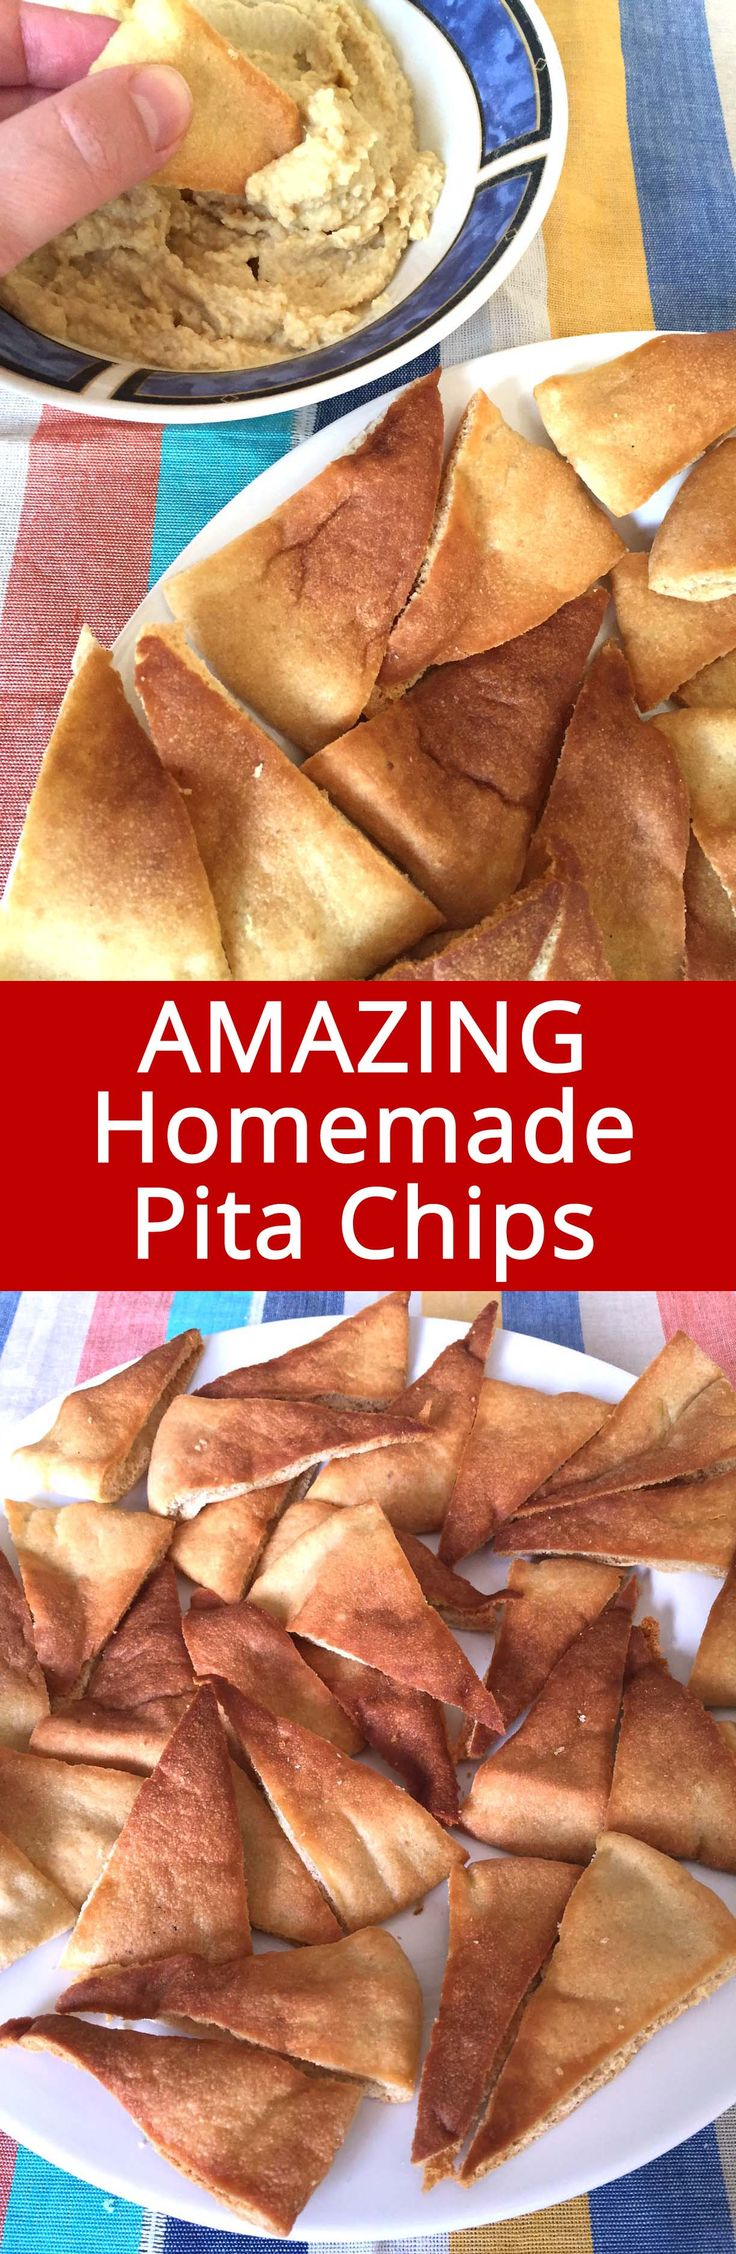 These homemade baked pita chips are amazing! So easy to make and so yummy! I'll never buy store-bought pita chips ever again!